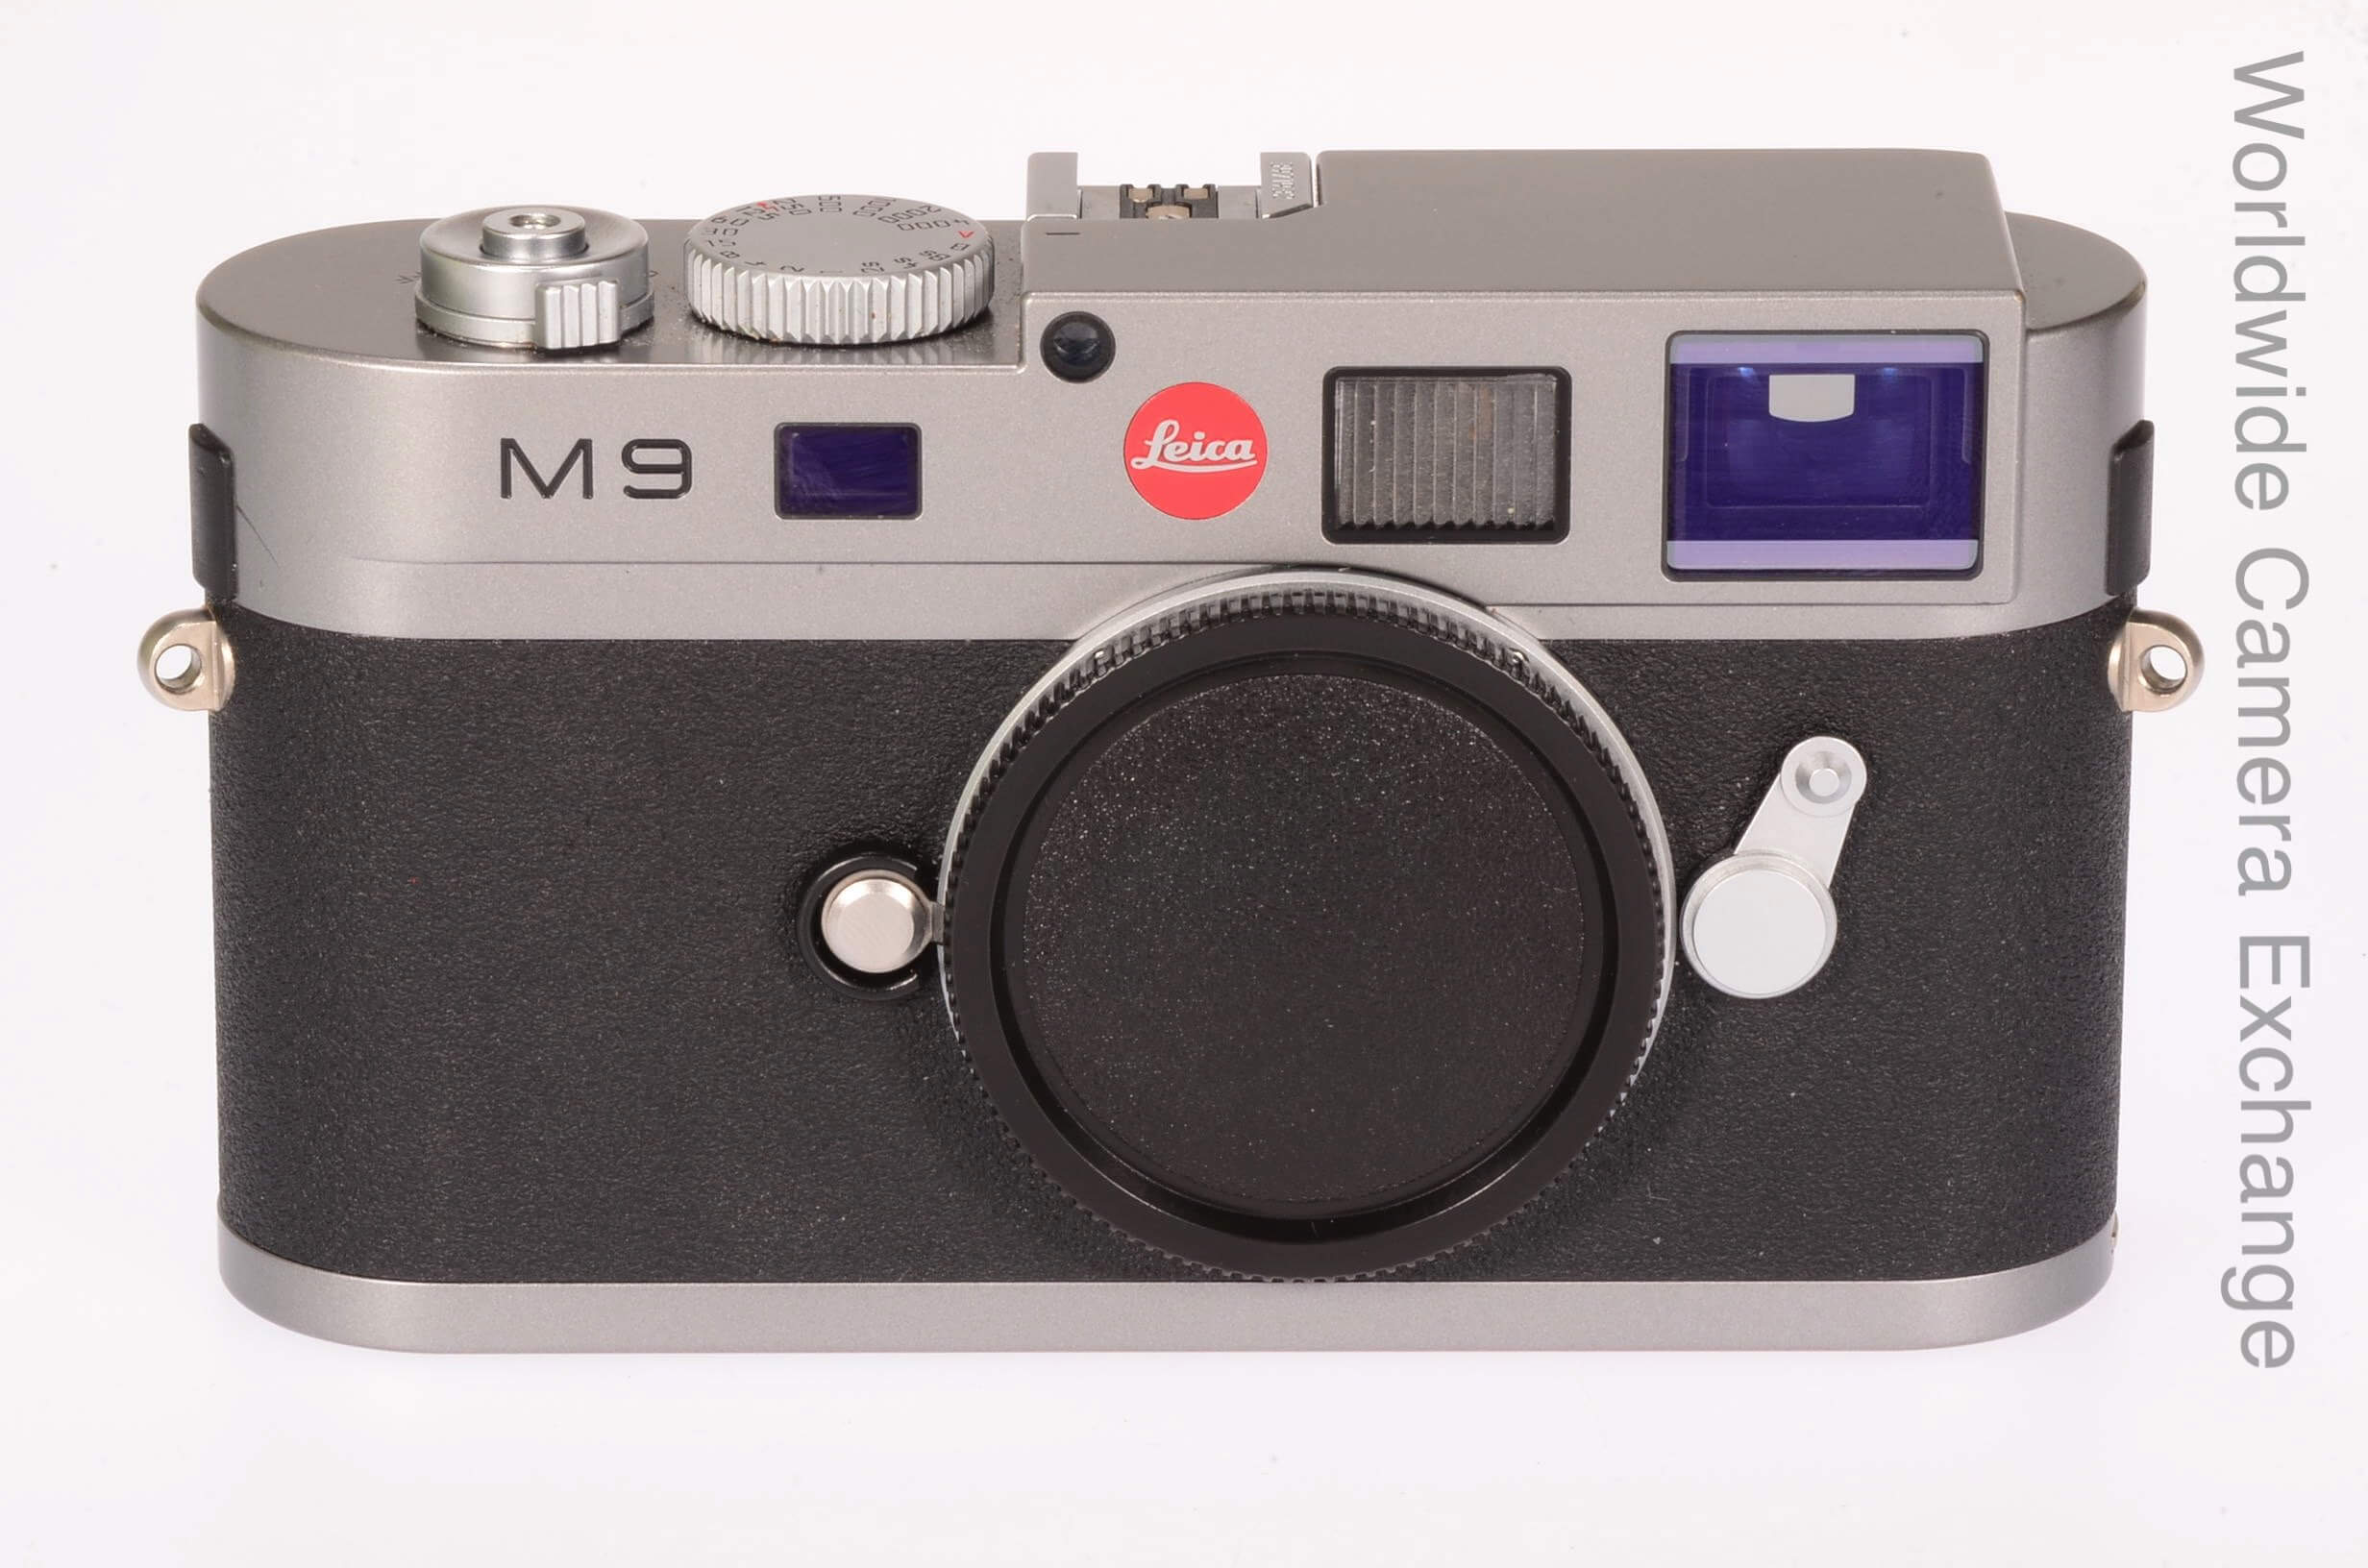 Leica M9 body, 1418 actuations, virtually mint!